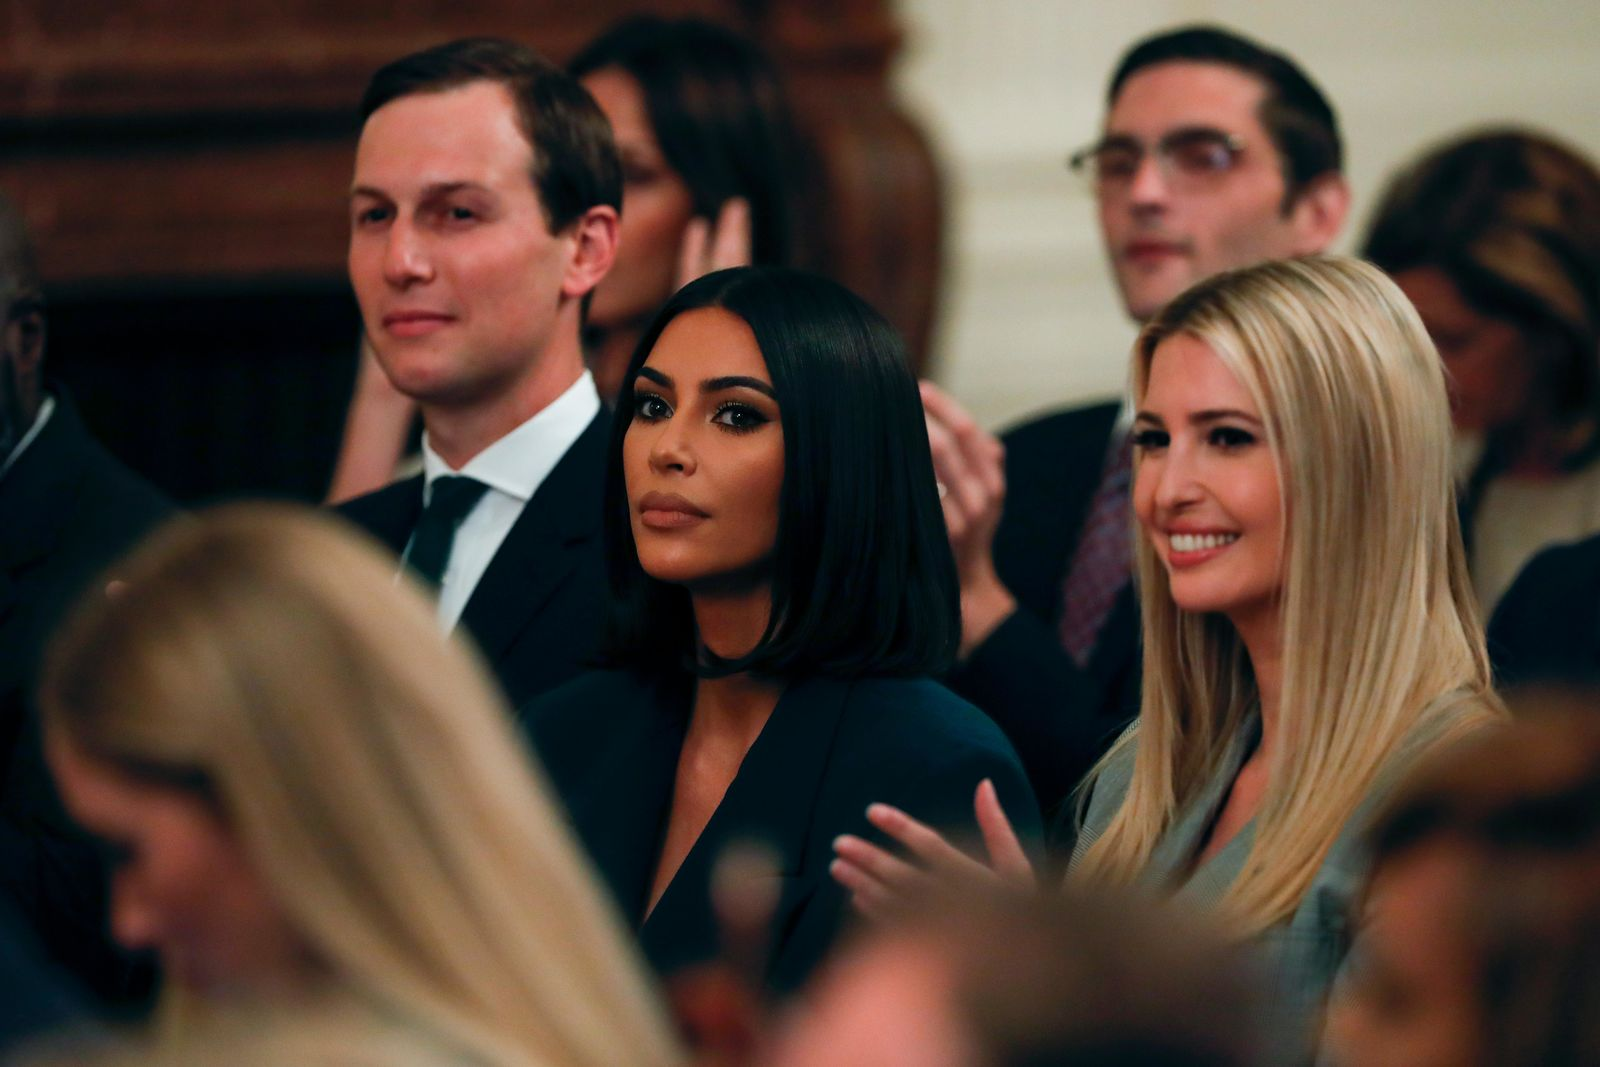 White House senior adviser Jared Kushner and Ivanka Trump, right, sit with Kim Kardashian West, who is among the celebrities who have advocated for criminal justice reform, as they listen to President Donald Trump speak about second chance hiring in the East Room of the White House, Thursday June 13, 2019, in Washington. (AP Photo/Jacquelyn Martin)